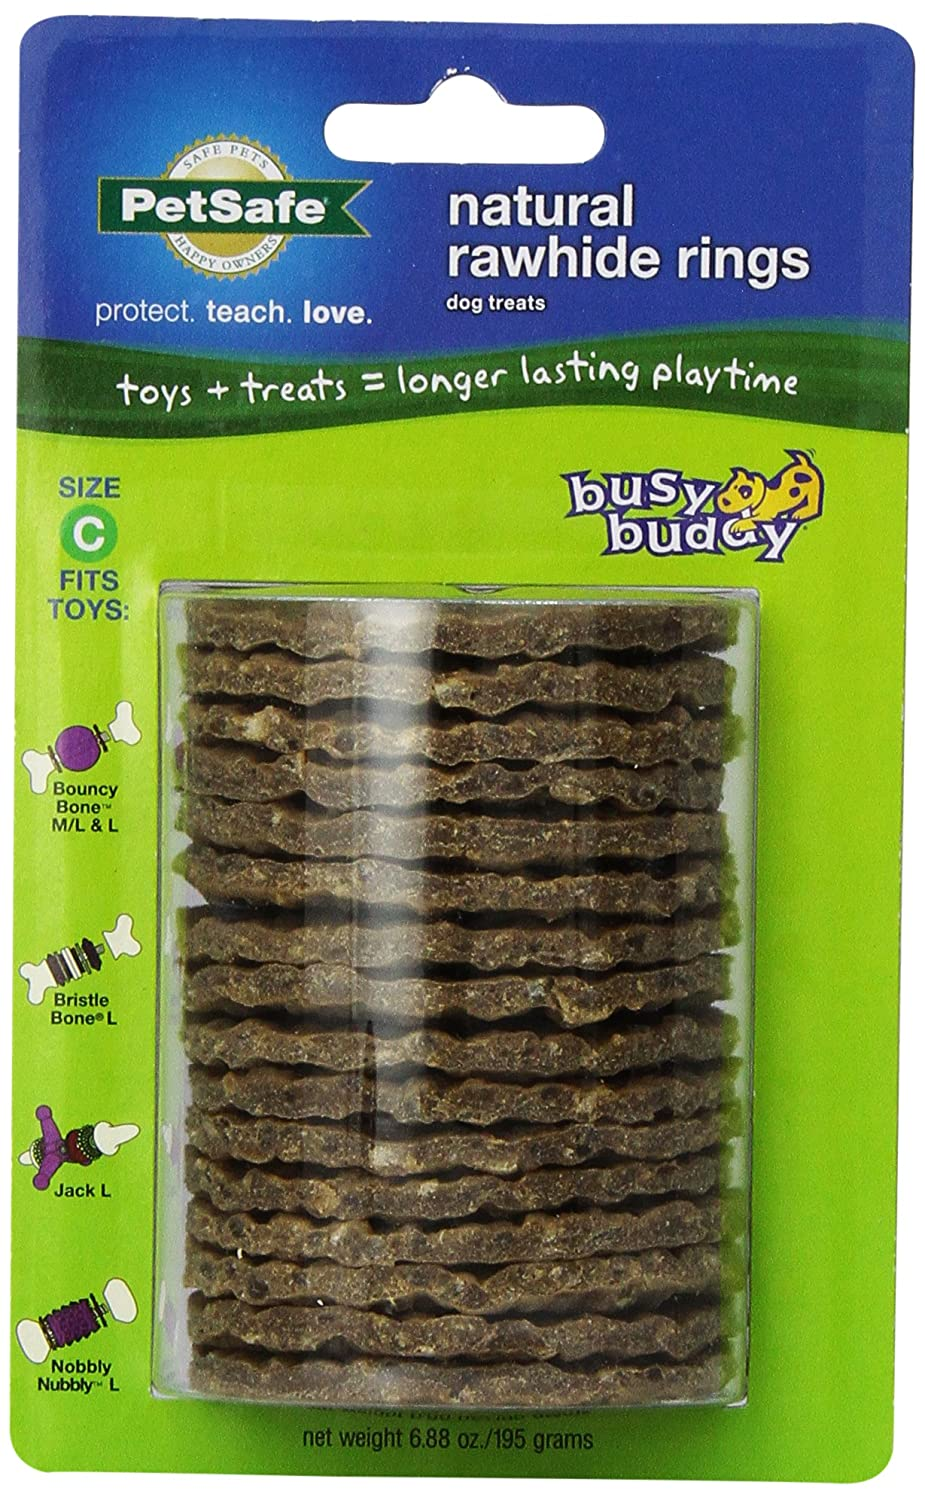 (SIZE C RINGS, Rawhide) PetSafe Busy Buddy Refill Ring Dog Treats for select Busy Buddy Dog Toys, Natural Rawhide